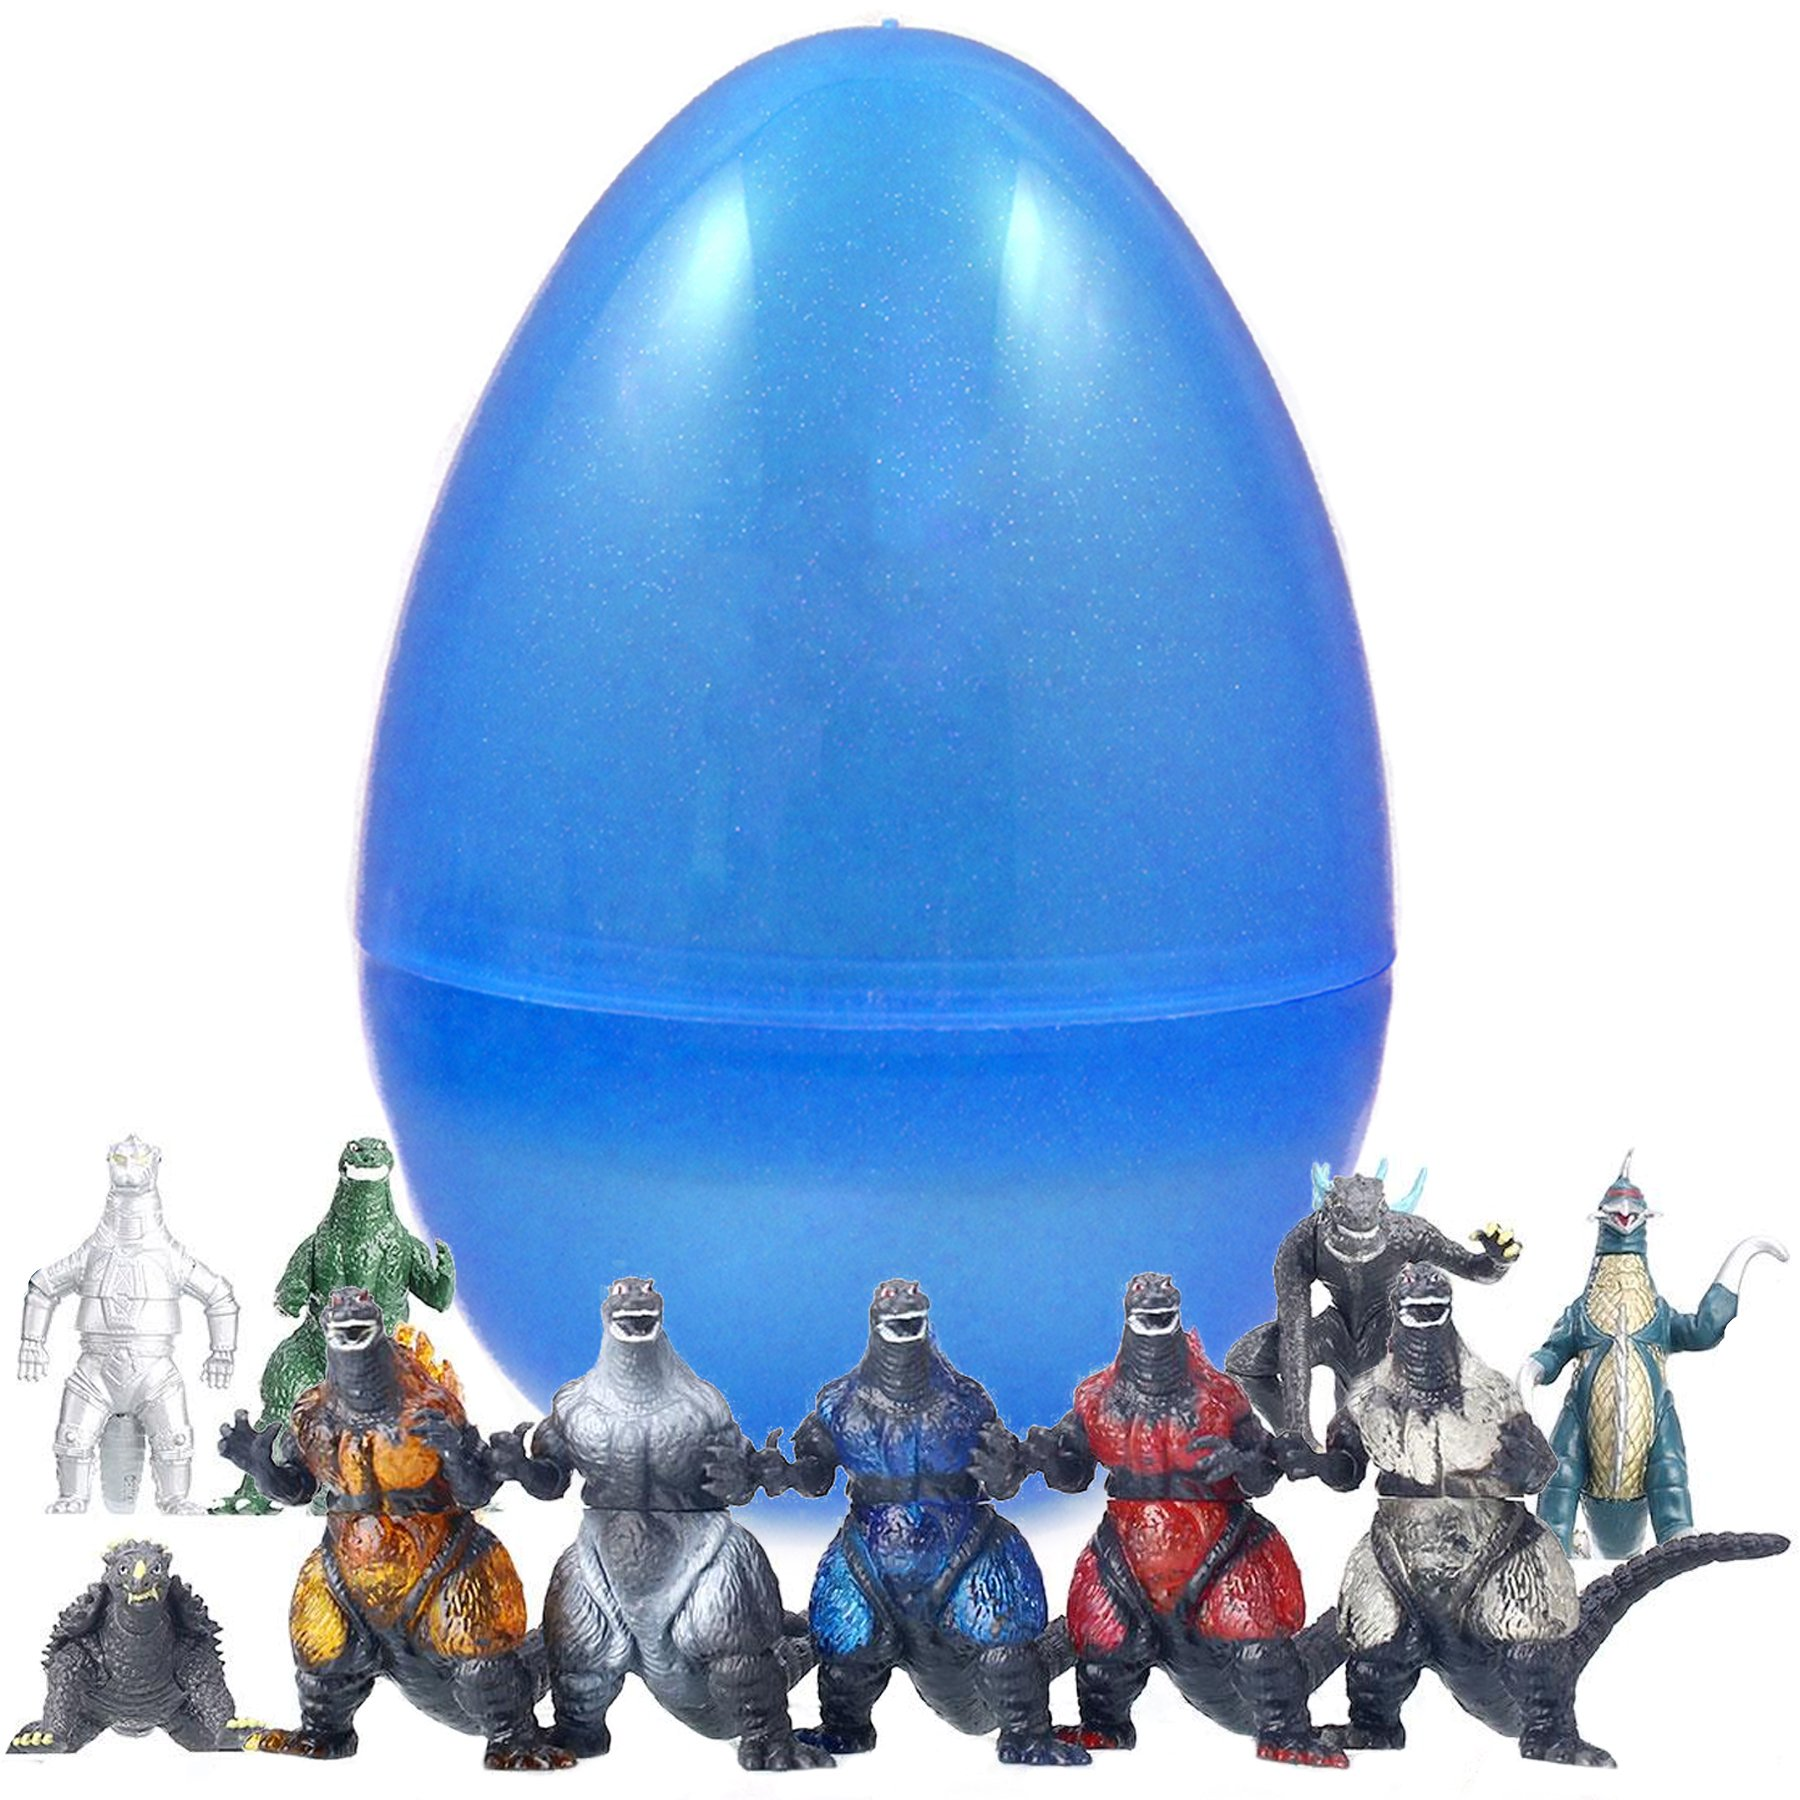 Jumbo 8 Inch Easter Egg With Godzilla Figurines - Save Time With Convenient Pre Filled Easter Eggs - Bright Colors and Durable Designs - Perfect As Kids Party Favors and Easter Basket Stuffers